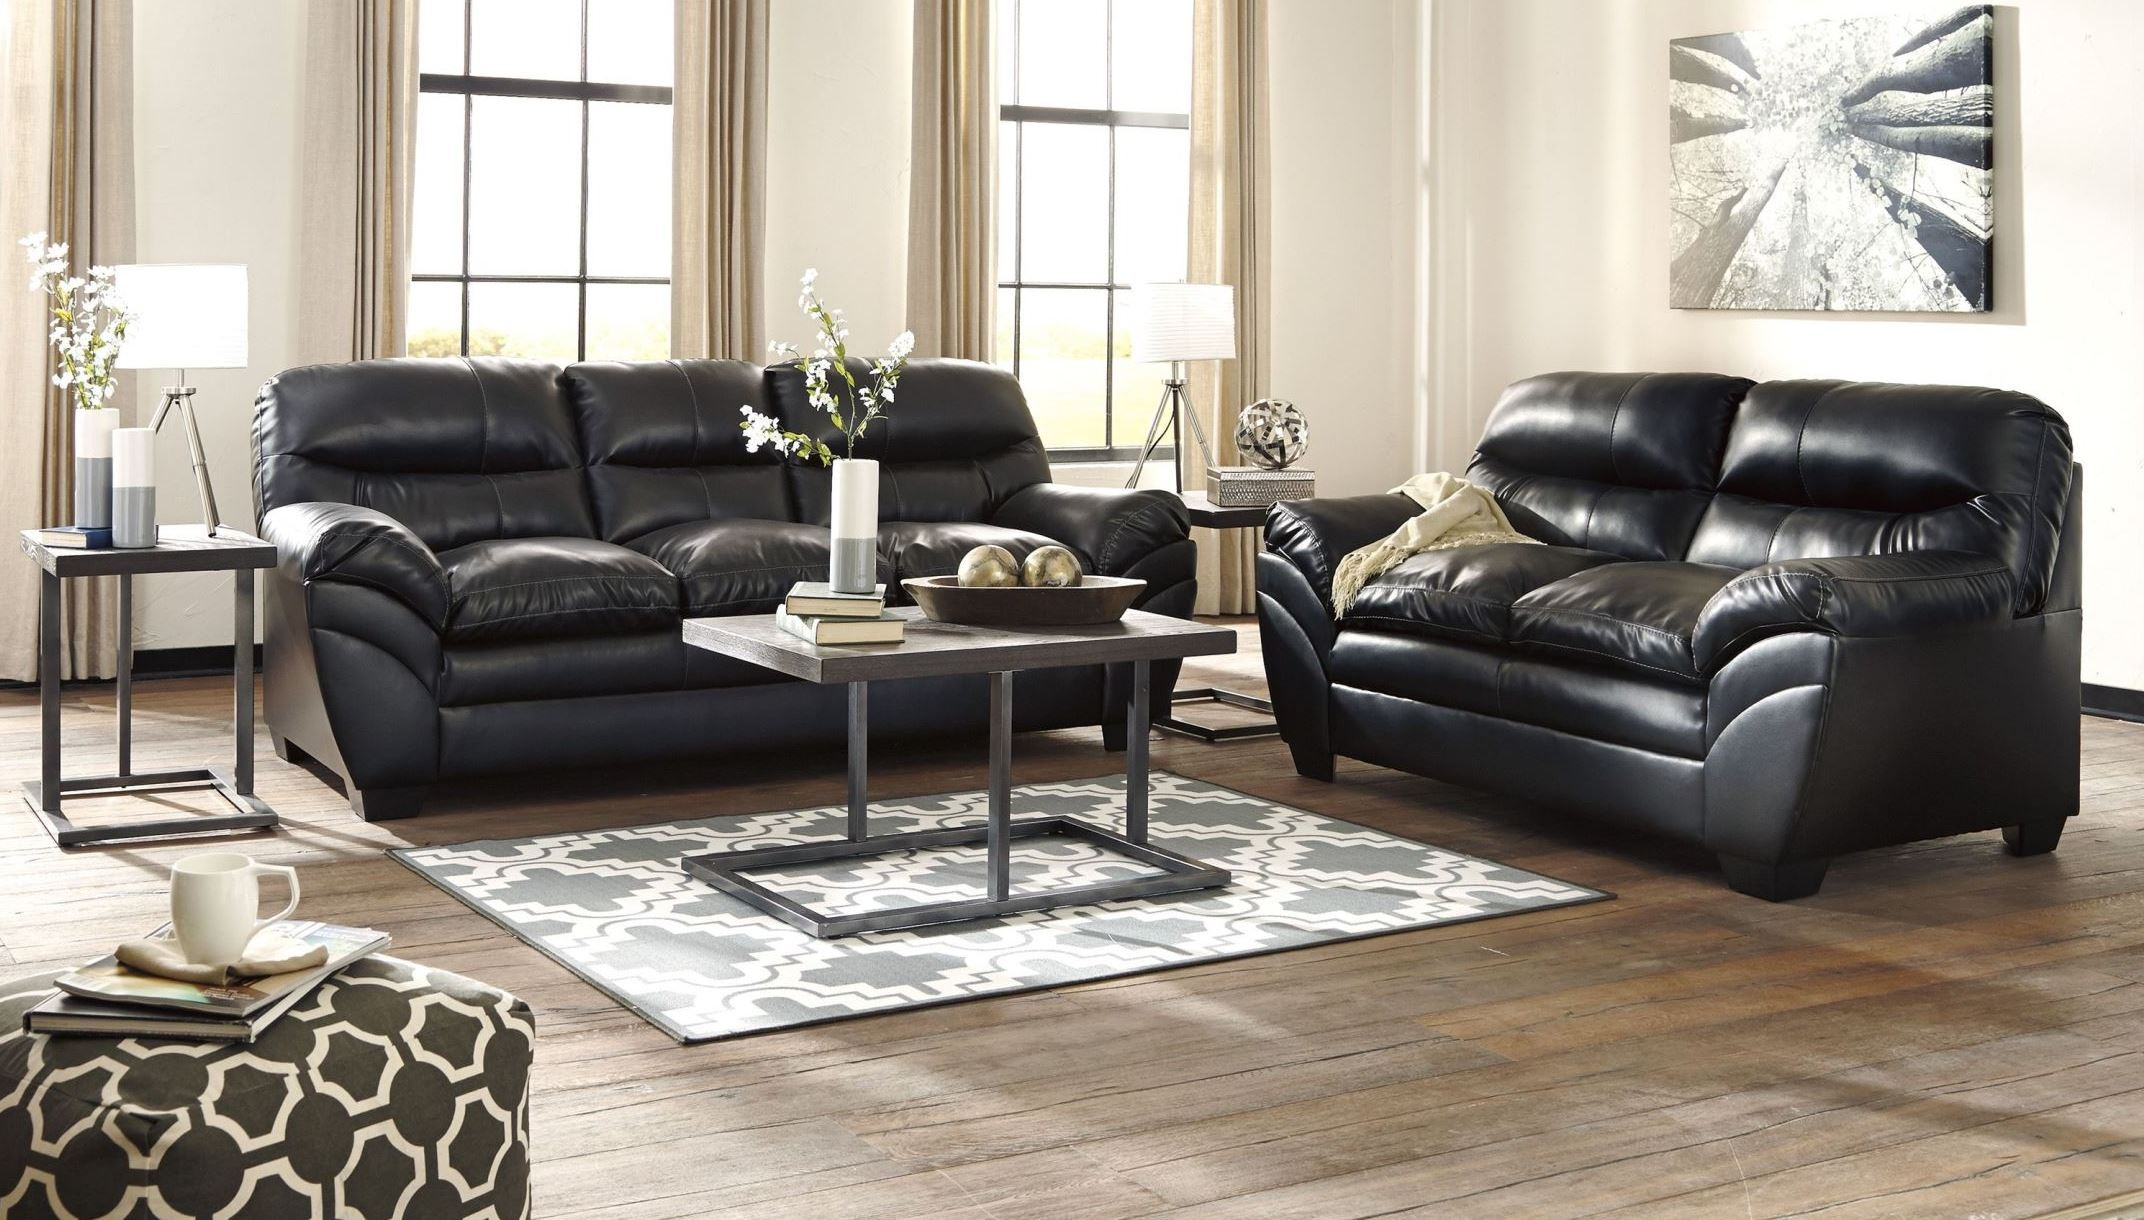 Tassler durablend black living room set from ashley for Durable living room furniture